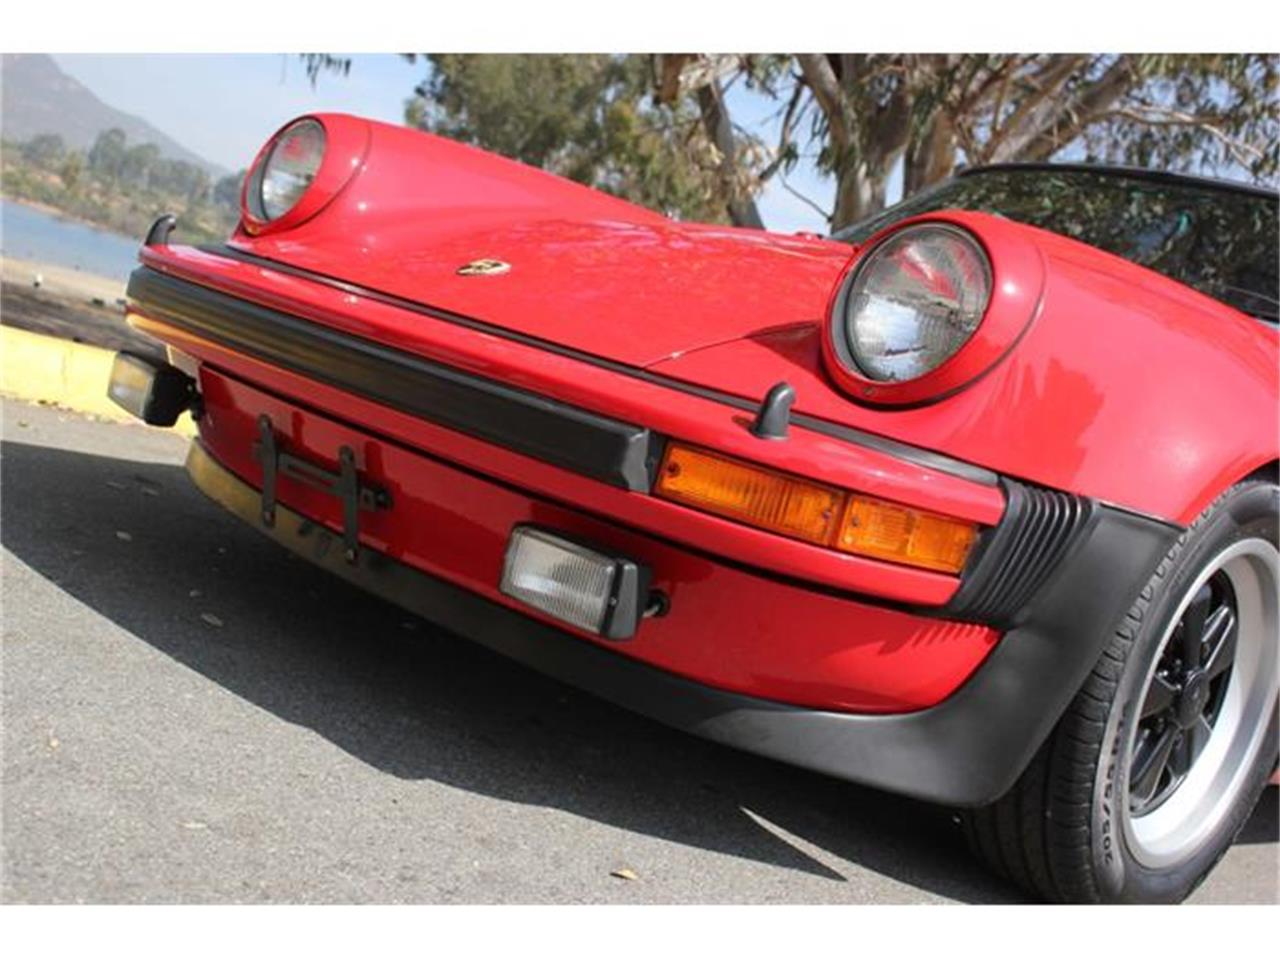 Large Picture of 1979 Porsche 930 Turbo located in San Diego California - $139,500.00 Offered by Precious Metals - GOQB